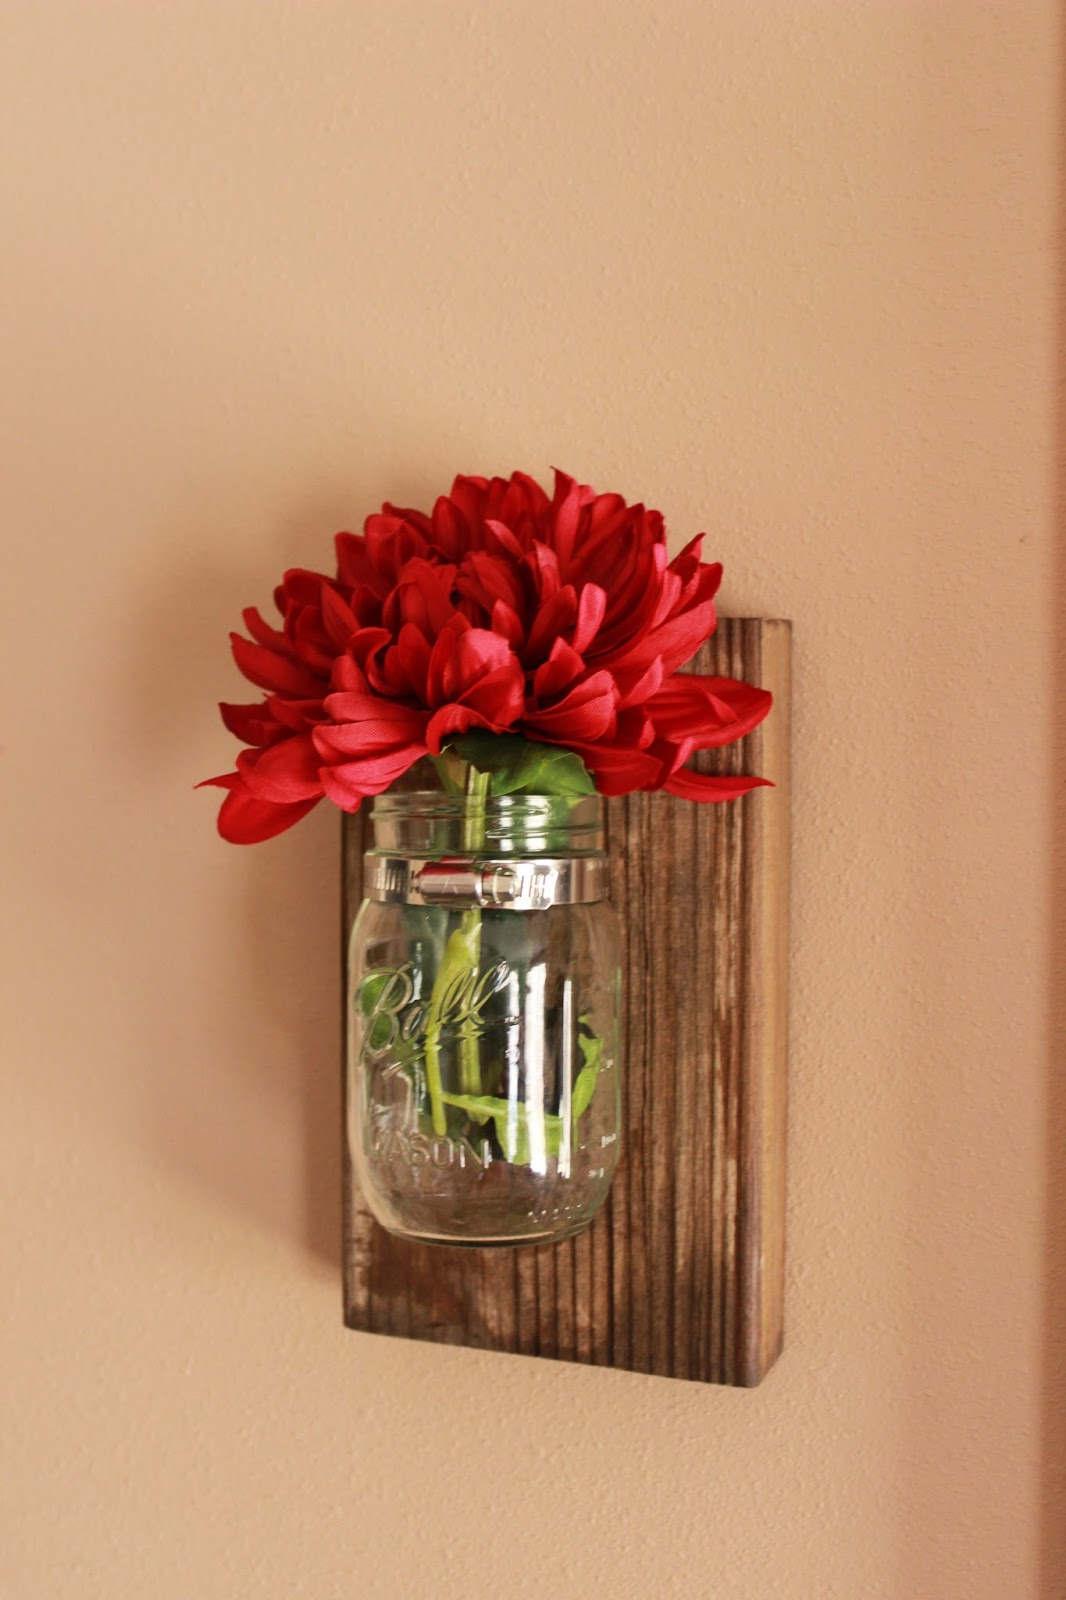 20 amazing diy mason jar projects crafts on fire diy mason jar diy jars diy crafts easy craft ideas diy projects solutioingenieria Image collections